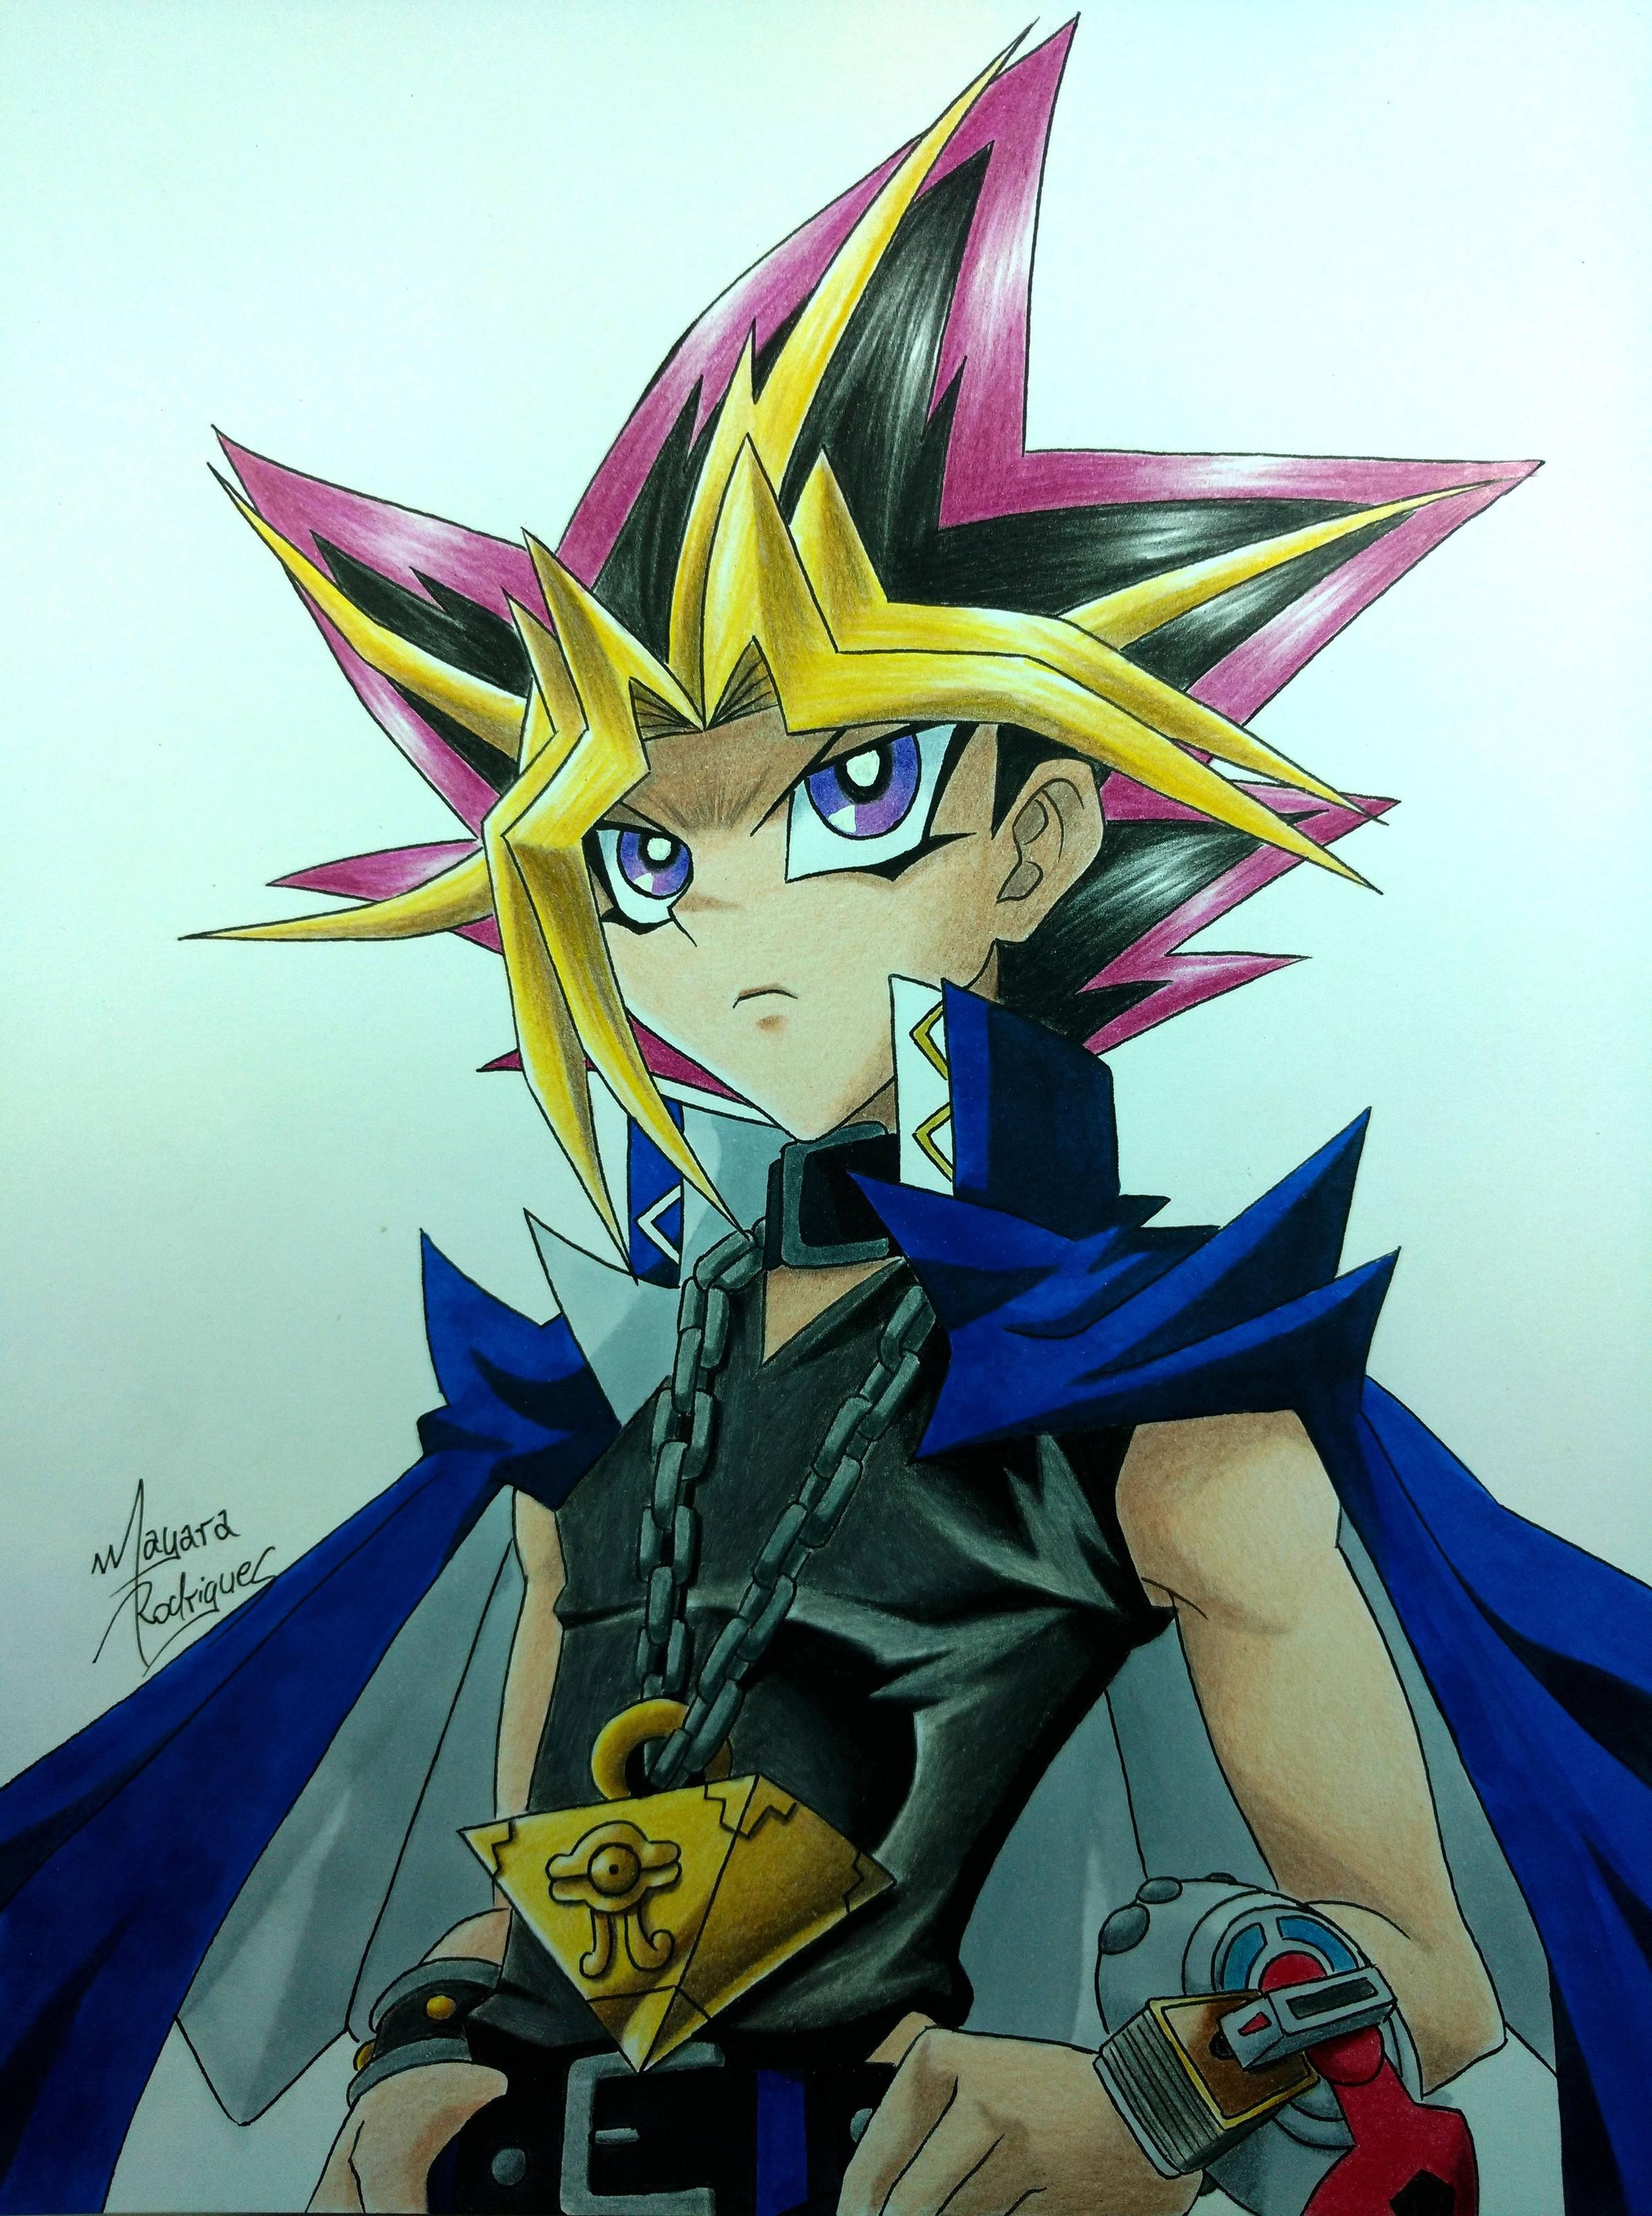 yami yugi yugioh by mayara rodrigues link for more